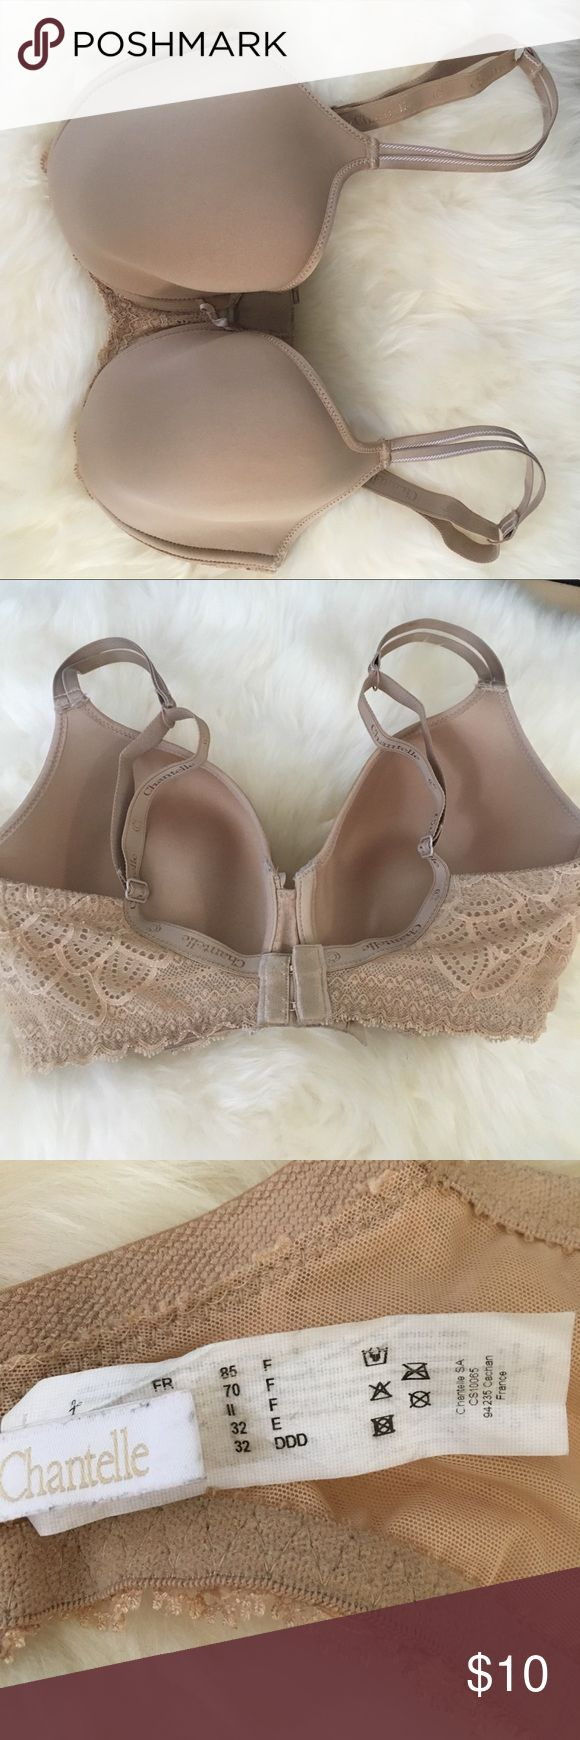 Chantelle bra Chantelle bra size 32 ddd.  Worn once but it is to shallow for me.  Hand washed in woolite and laid flat to dry.  It is the merci t shirt bra from this line. Chantelle Intimates & Sleepwear Bras